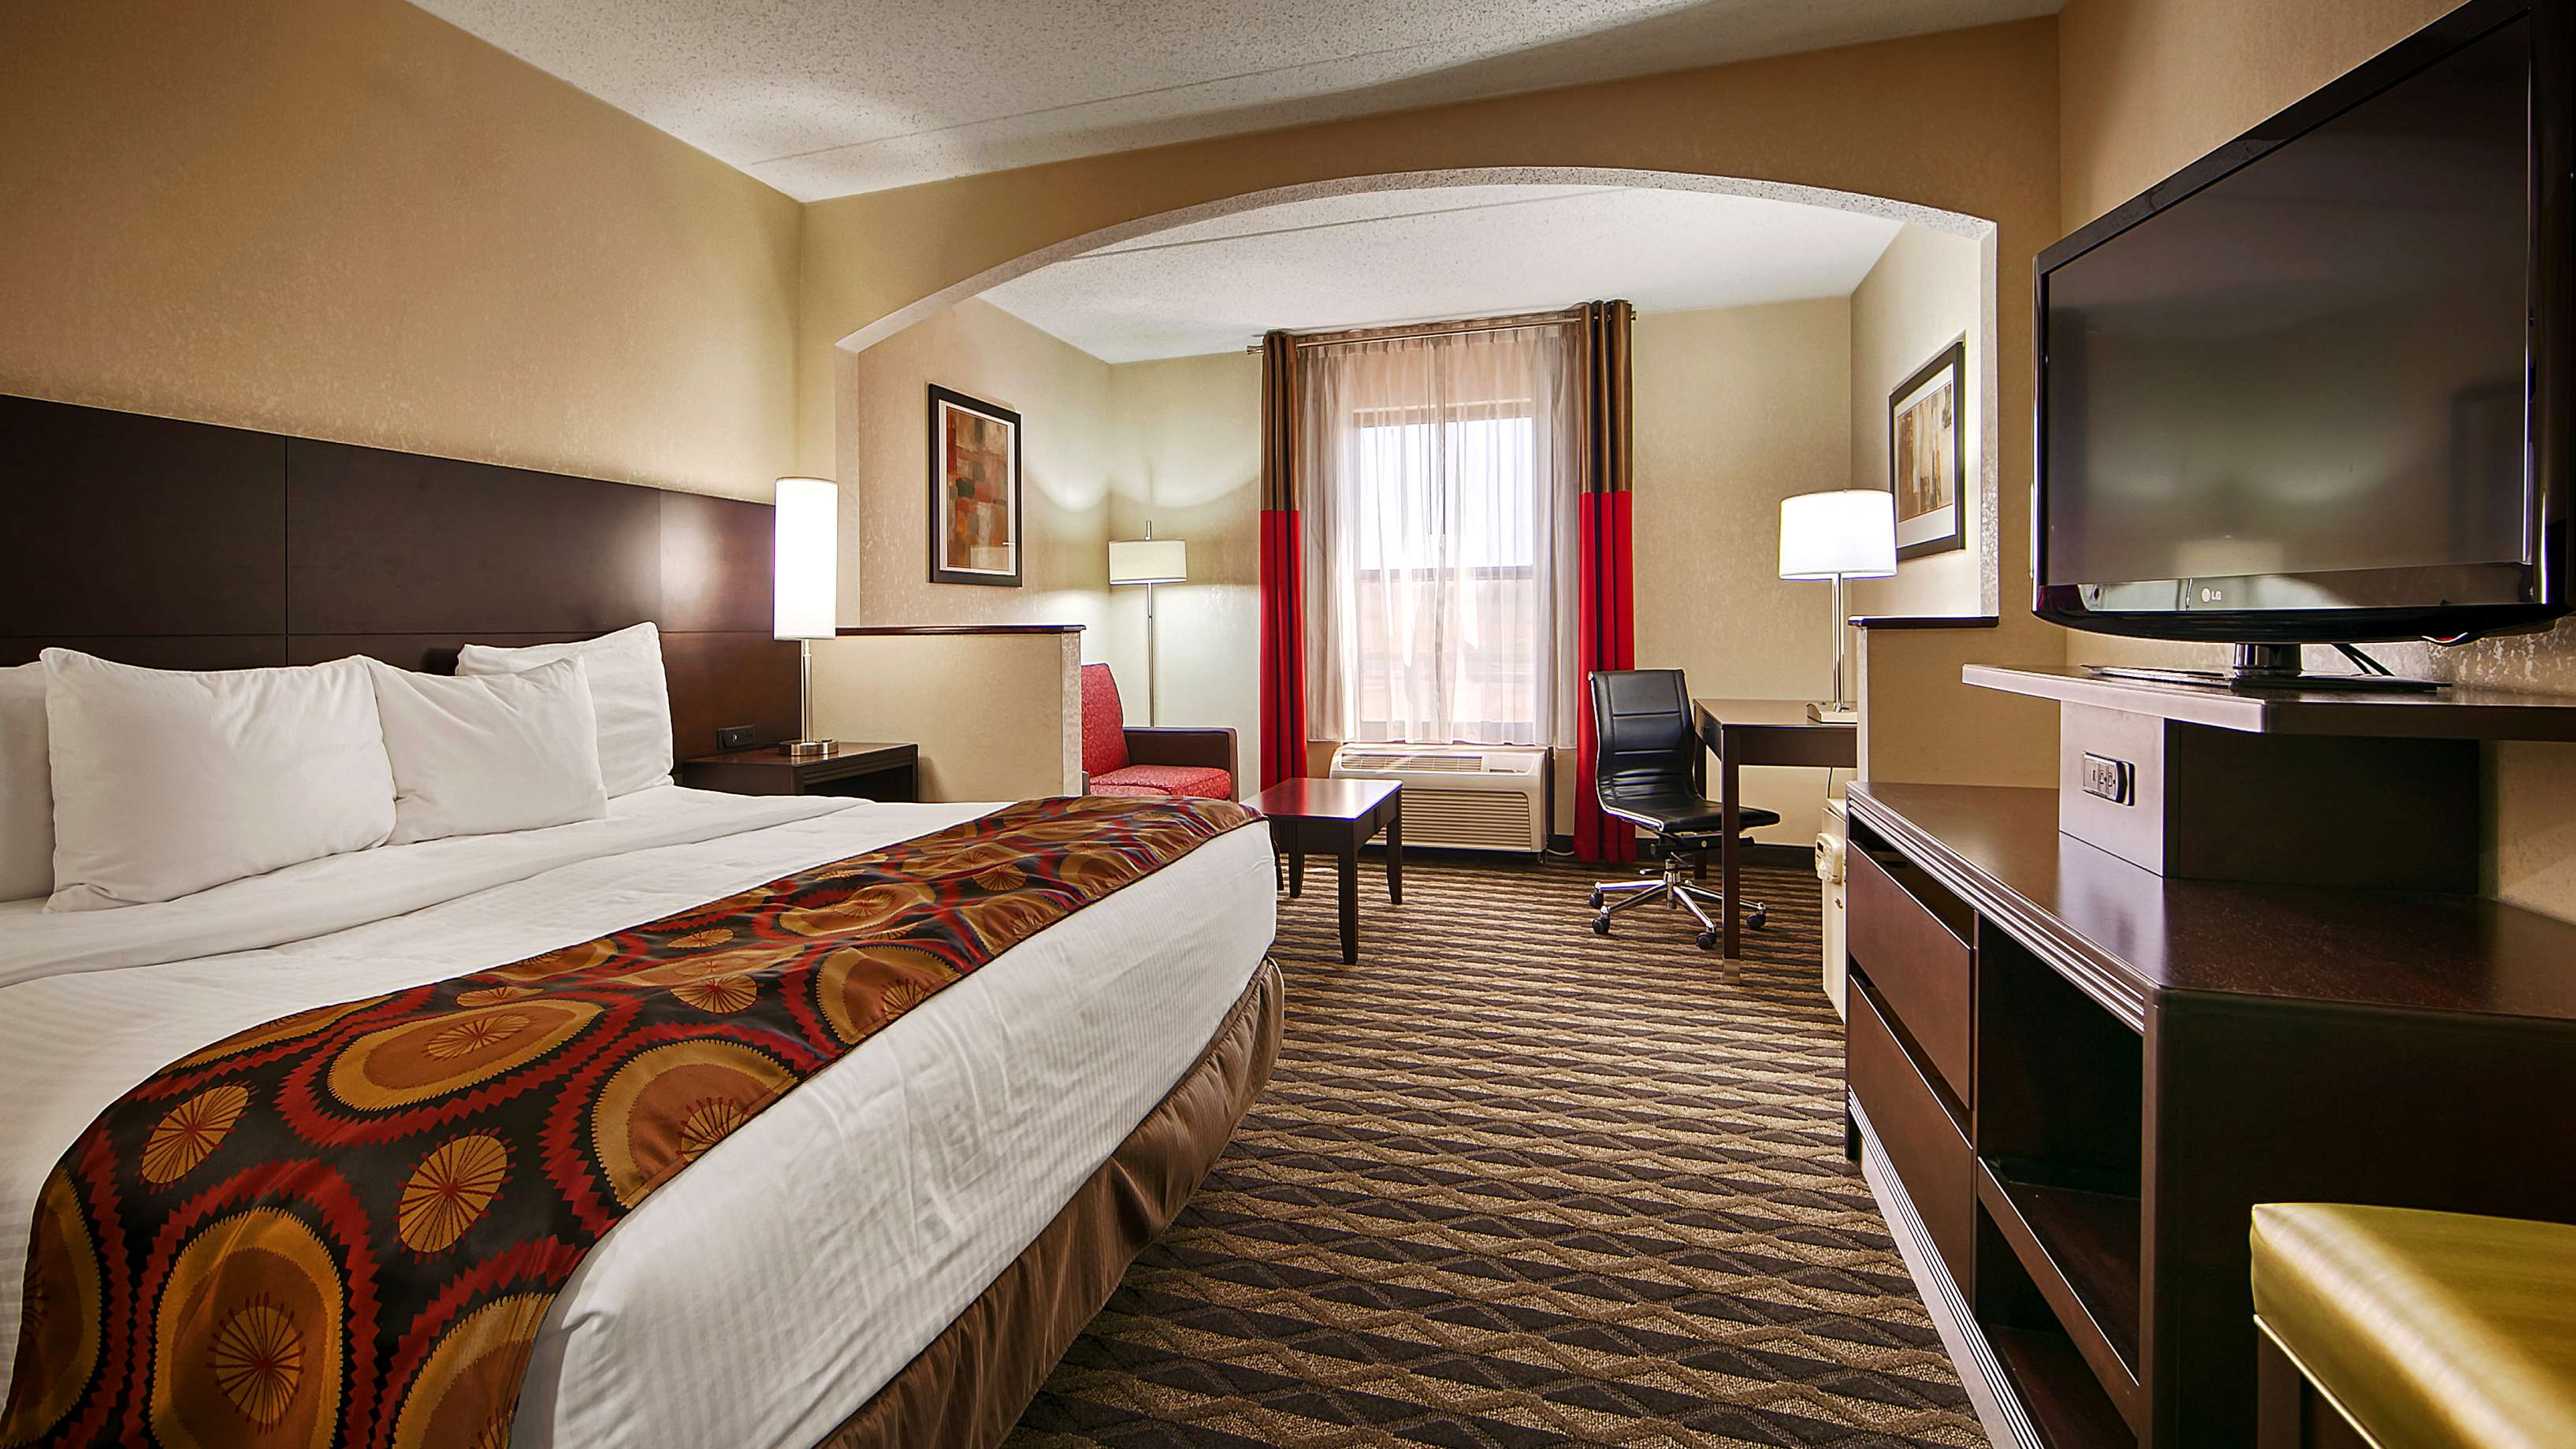 Browse a list of current deals and popular packages at Gaylord Opryland Resort & Convention Center Opryland hotel deals coupons. Our hotel will help you save on your upcoming Nashville vacation. Opryland hotel deals coupons.